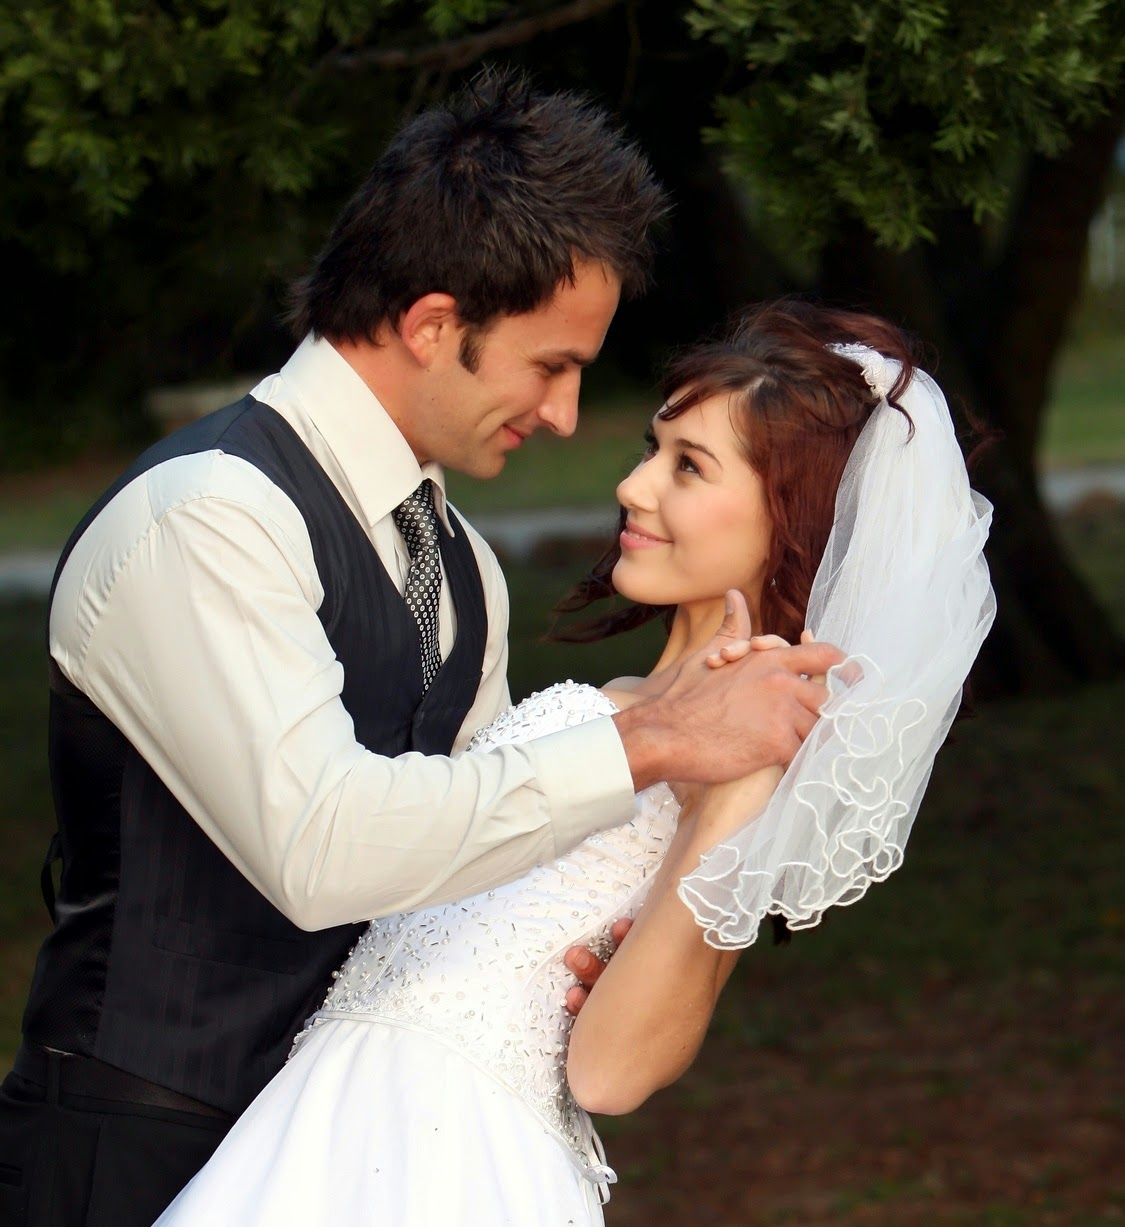 Top First Dance Songs 2014